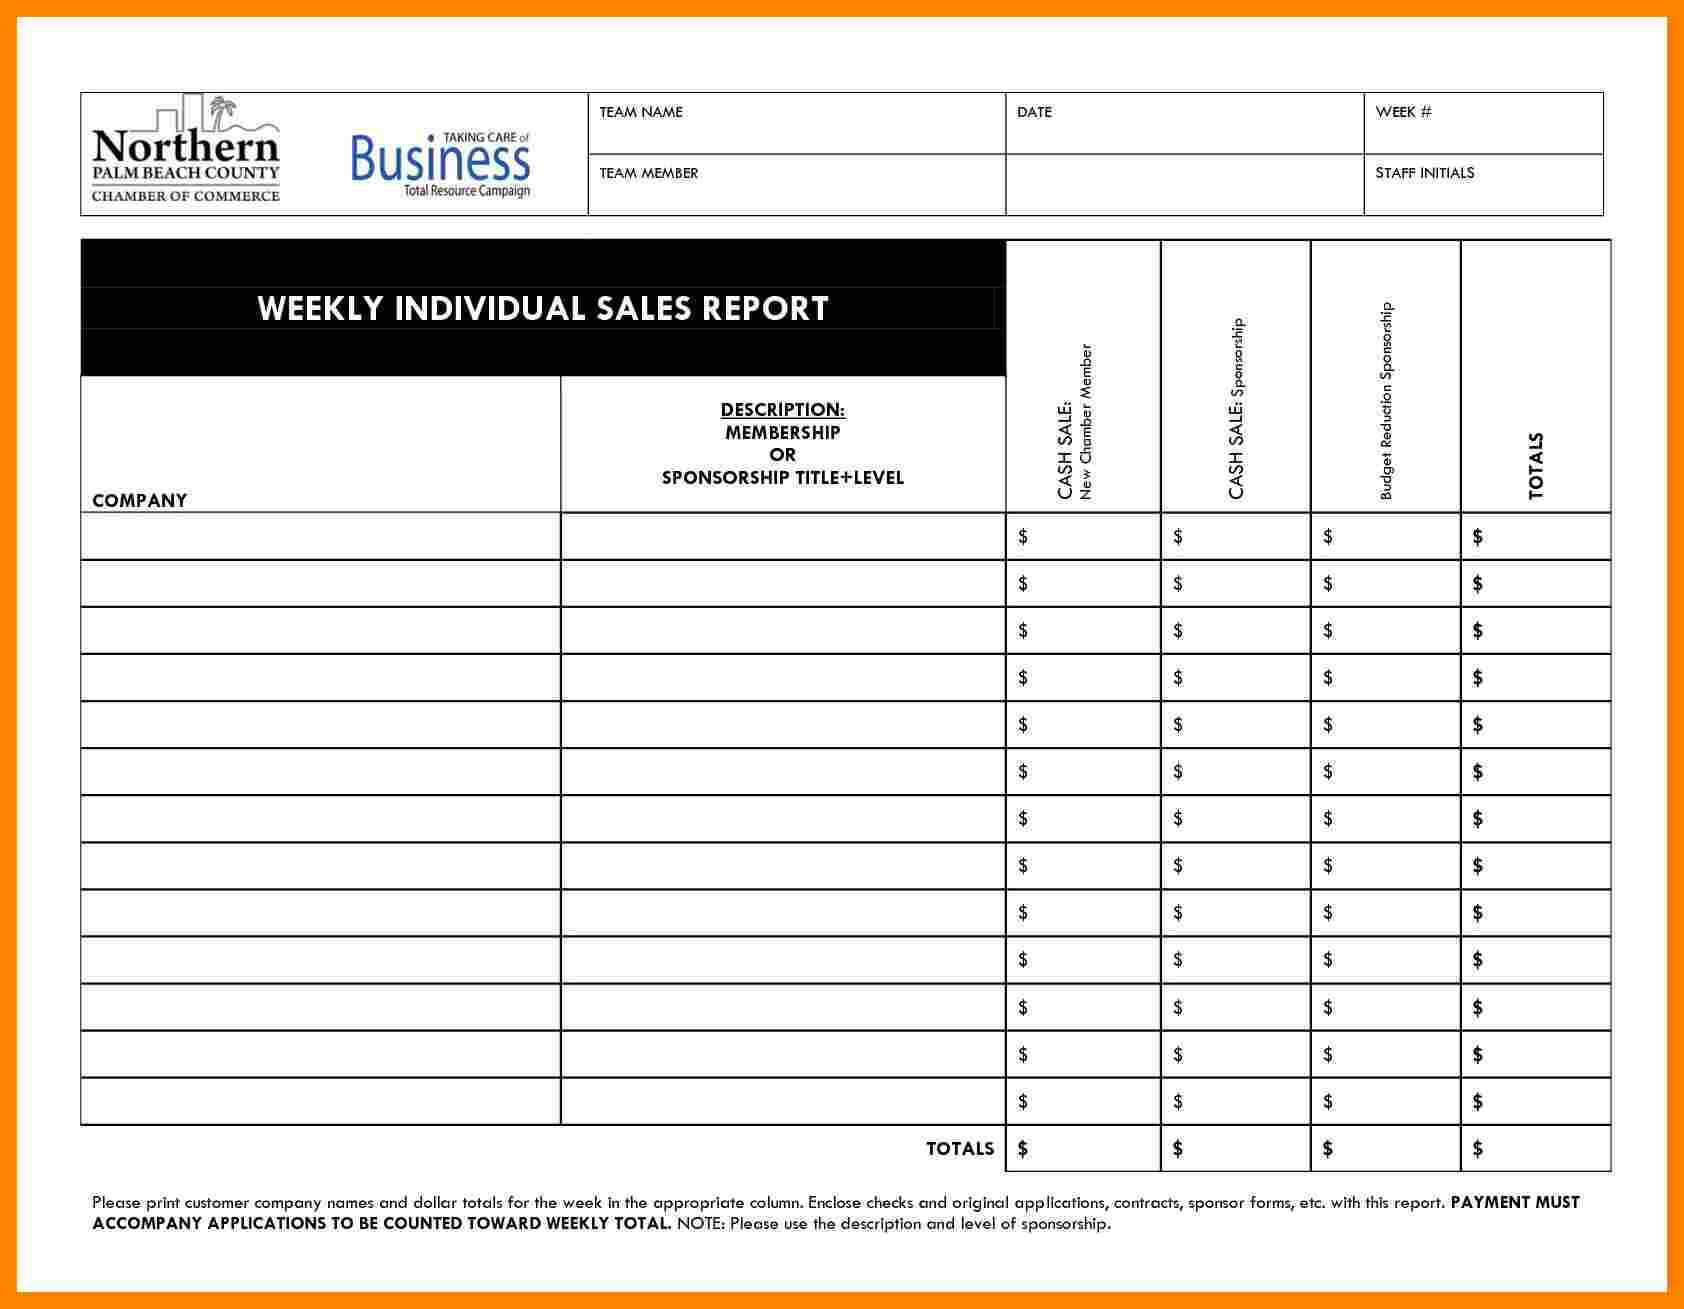 010 Daily Activity Report Template Free Download Salesll With Regard To Daily Sales Call Report Template Free Download